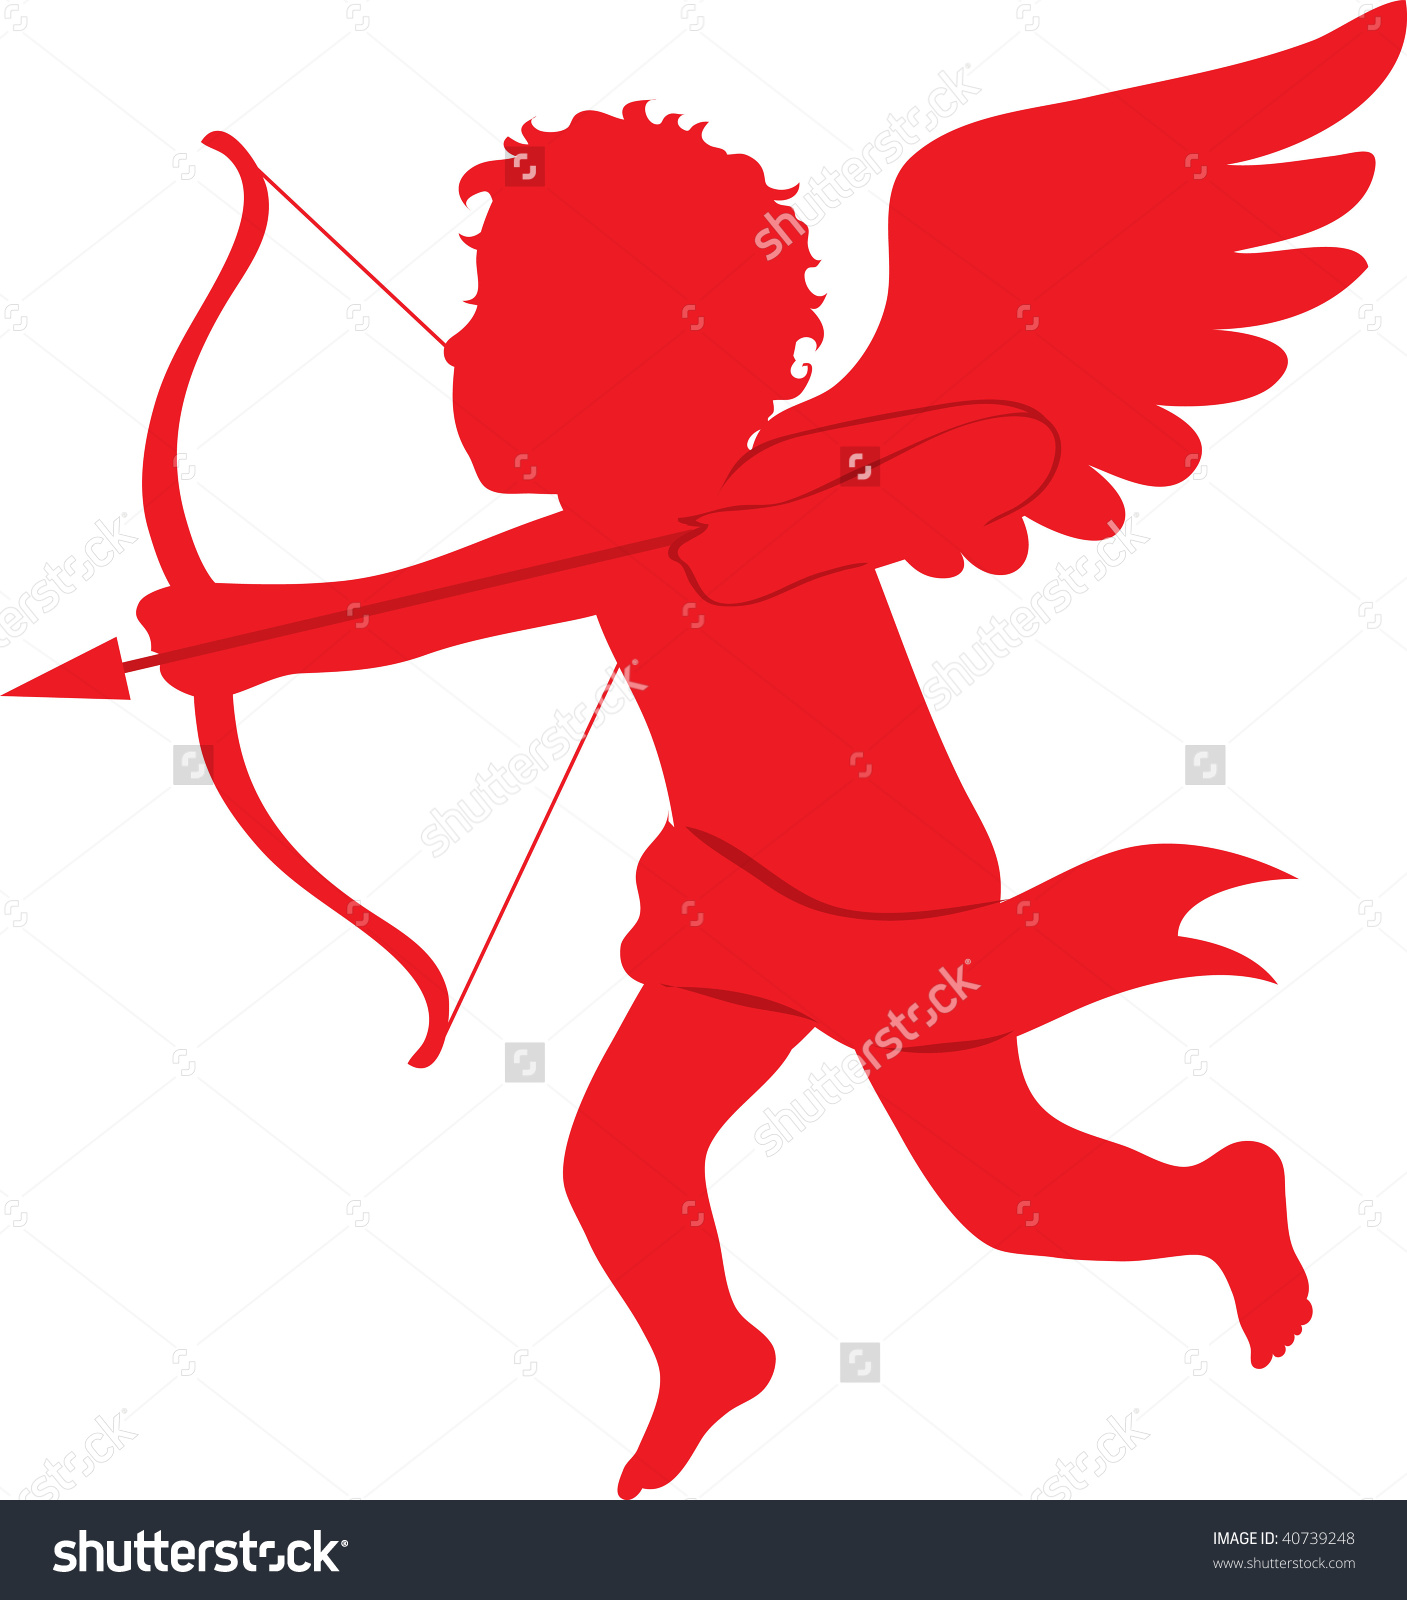 Clip Art Illustration Red Silhouette Cupid Stock Illustration.